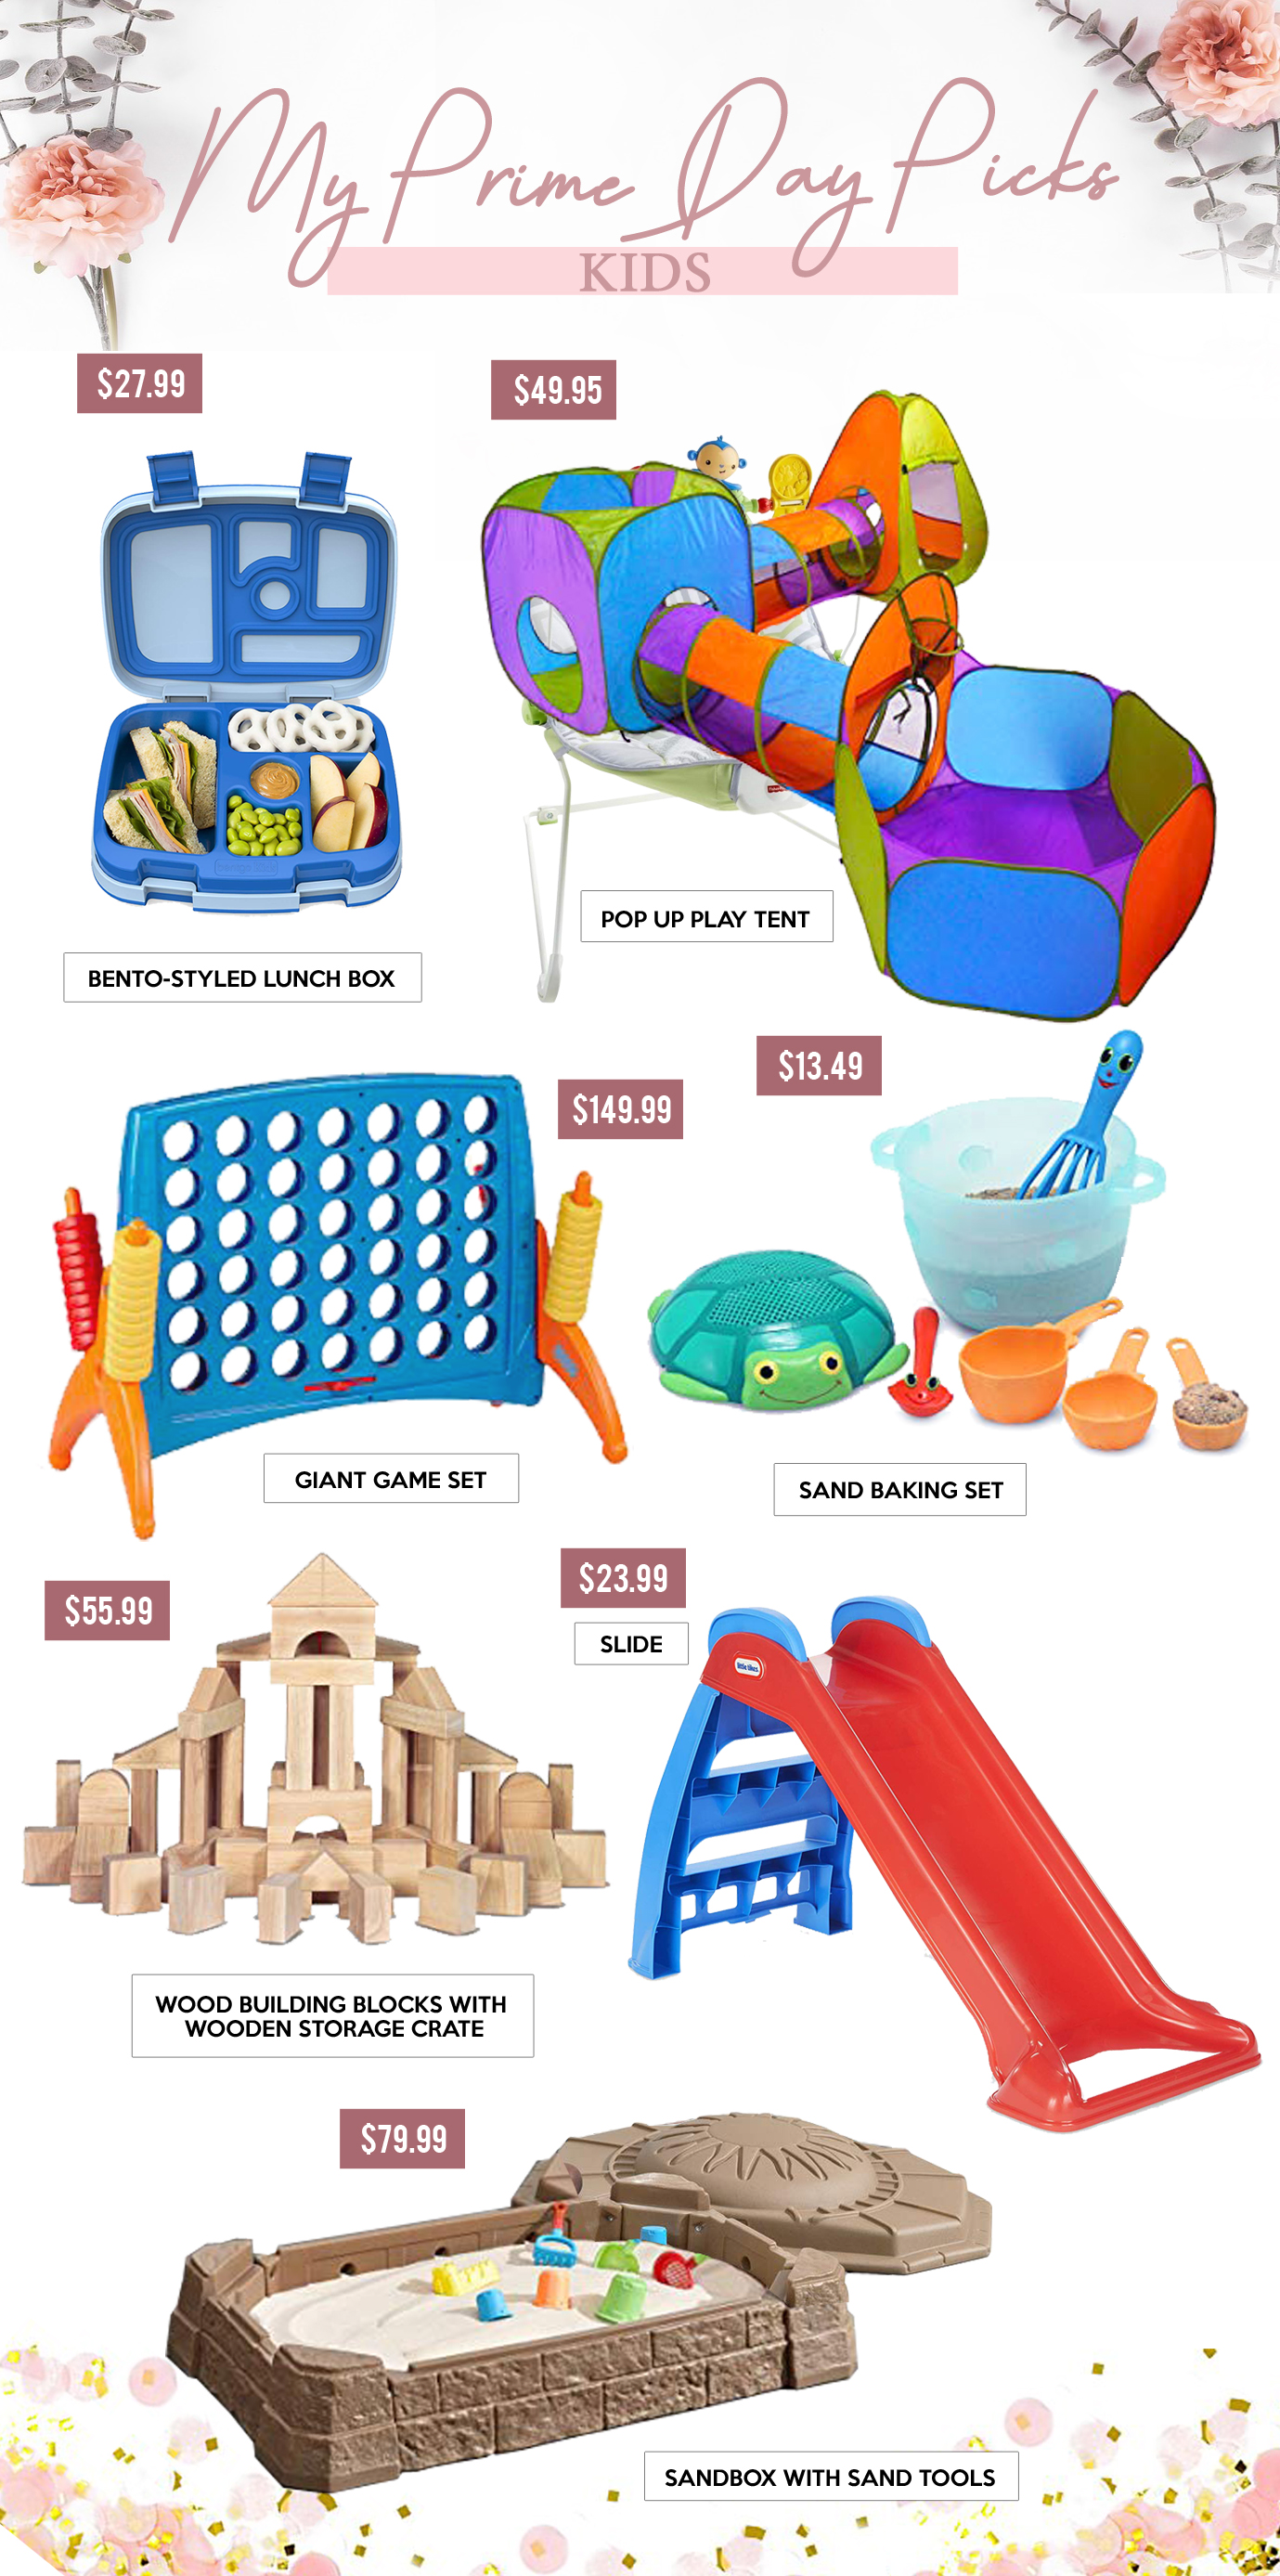 Gift Guides - MY PRIME DAY PICKS - Kids